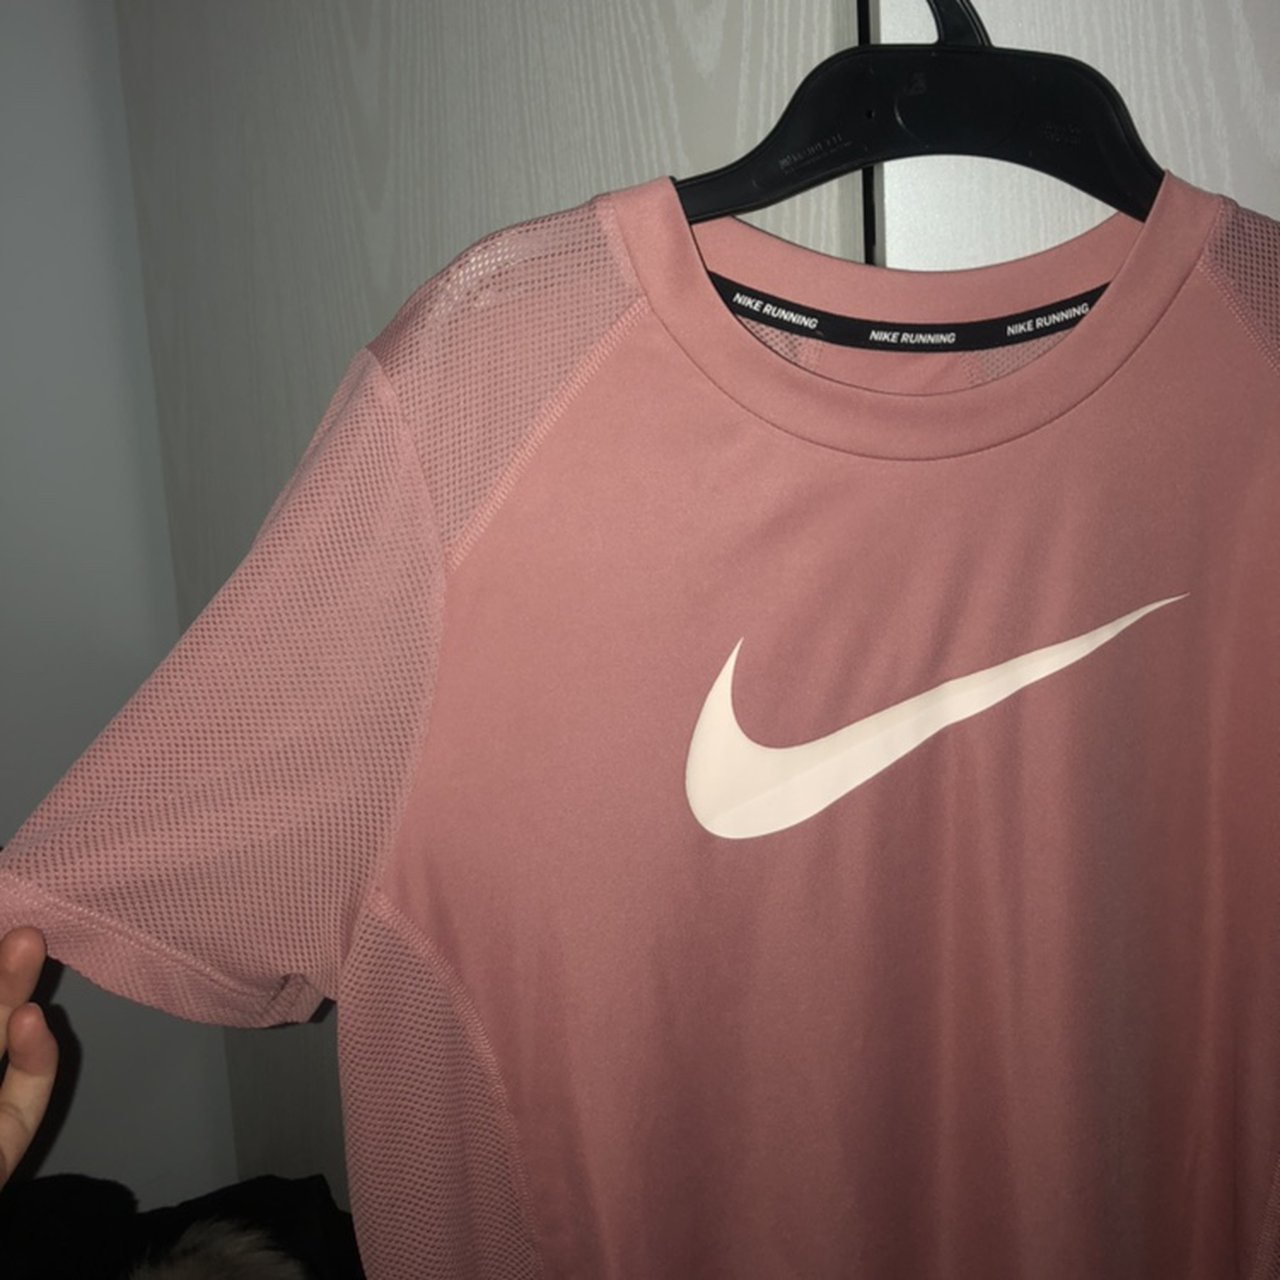 women s nike running top in light pink rose gold depop women s nike running top in light pink